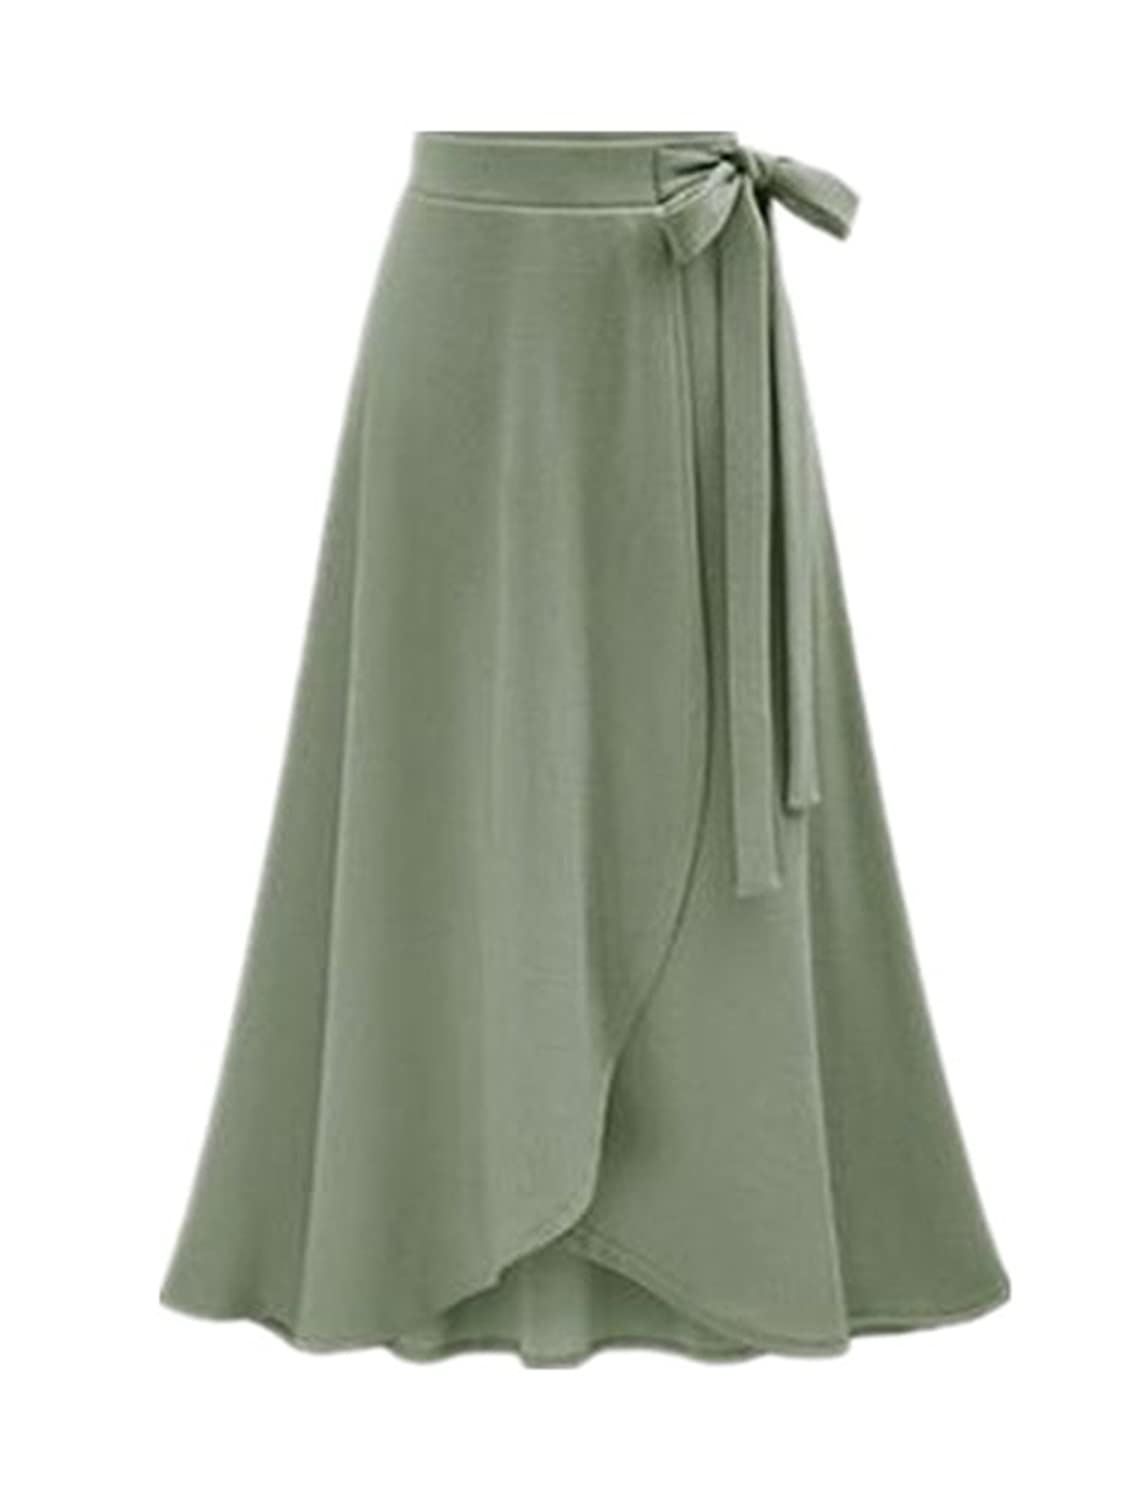 Castjones Women Skirt New Summer Vintage Long Skirt Women High Waist Elegant Chiffon Skirt Lady Beach Solid Large Size Army Green XL at Amazon Womens ...